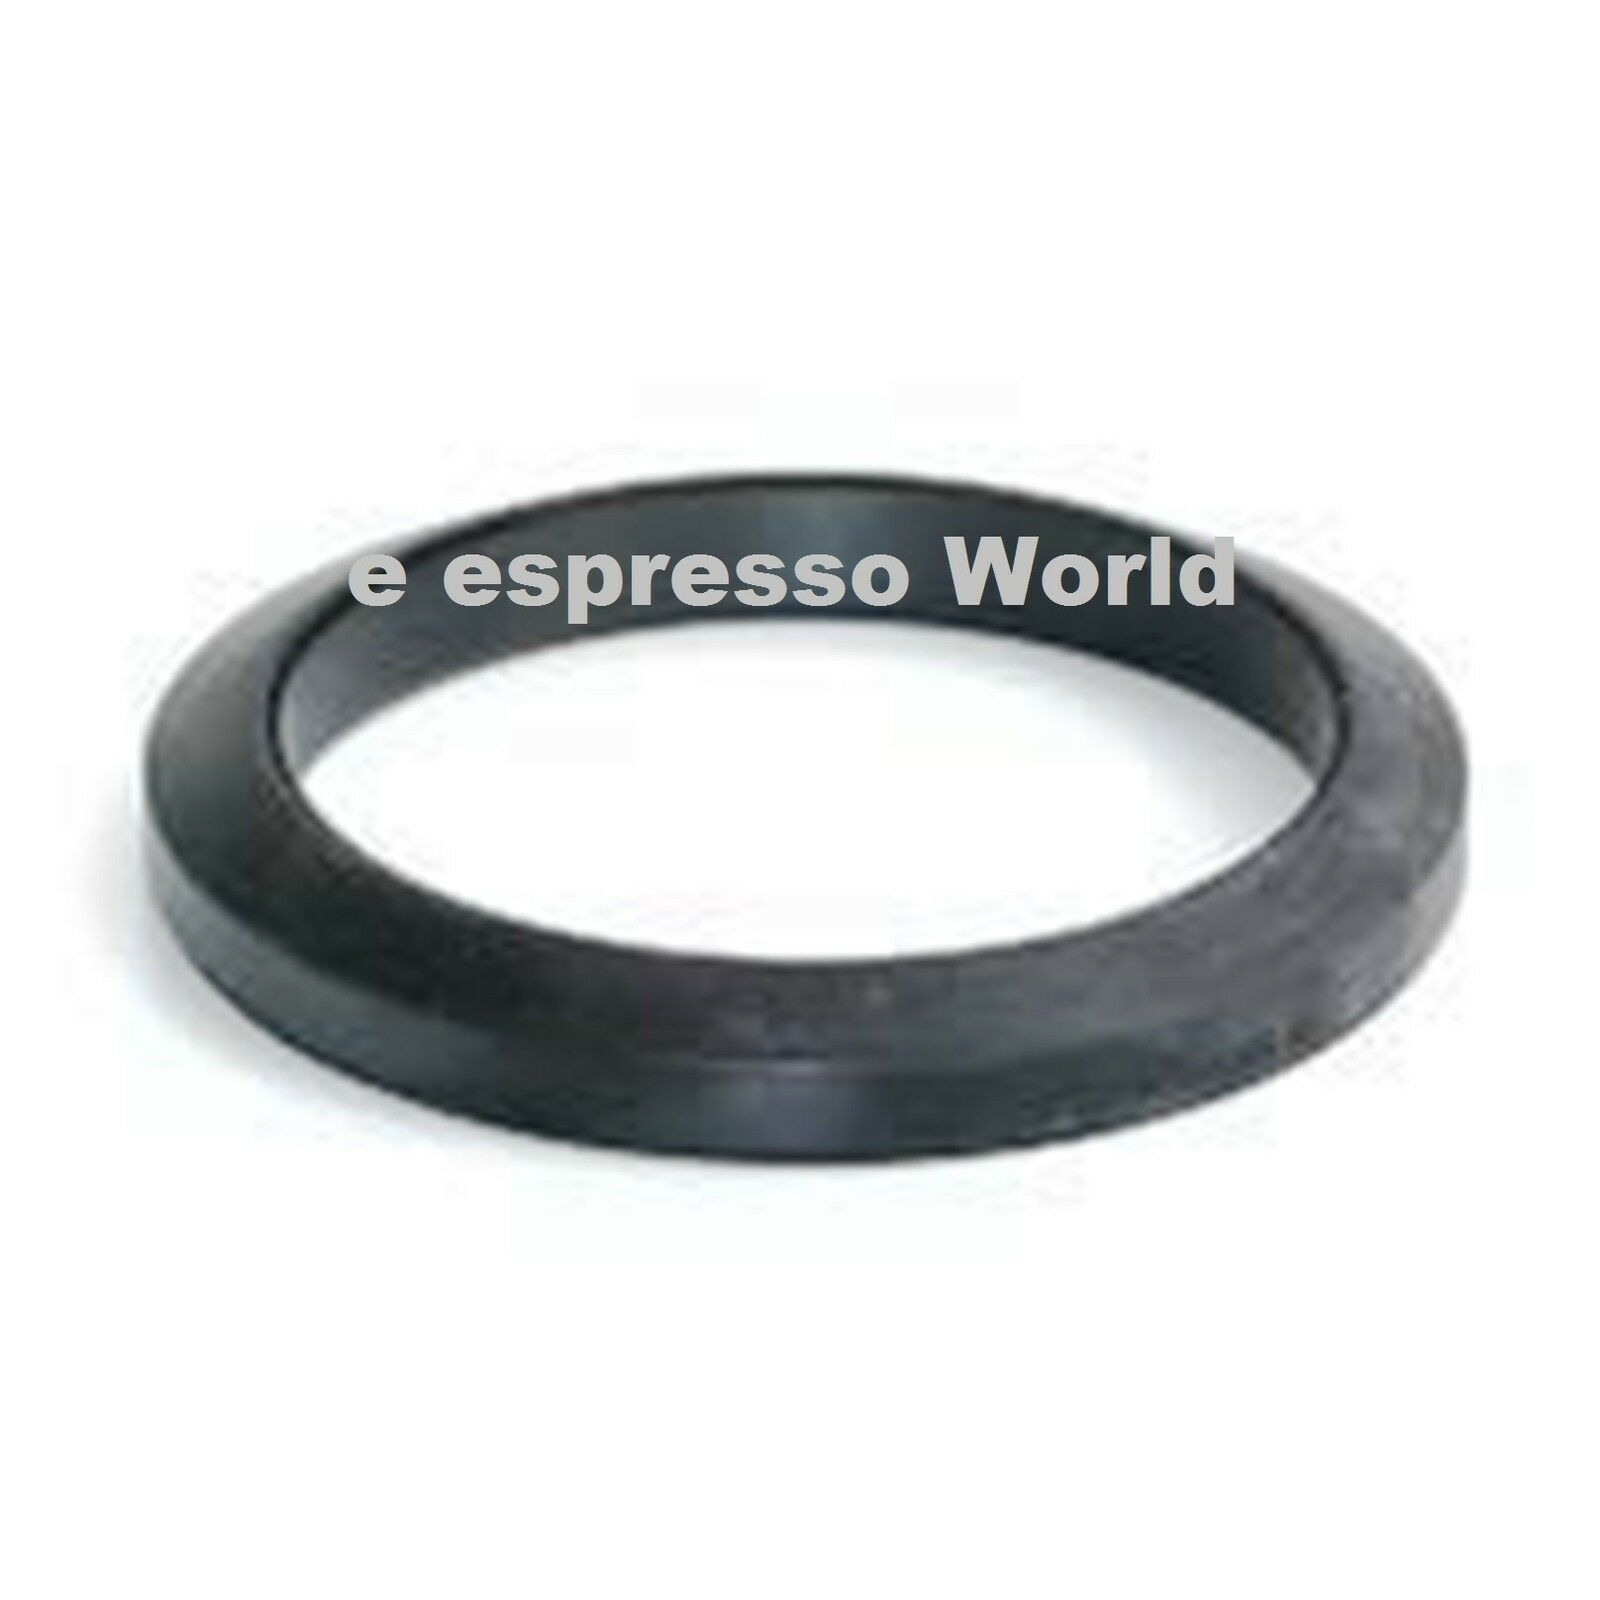 la cimbali espresso conical group head portafilter gasket. Black Bedroom Furniture Sets. Home Design Ideas